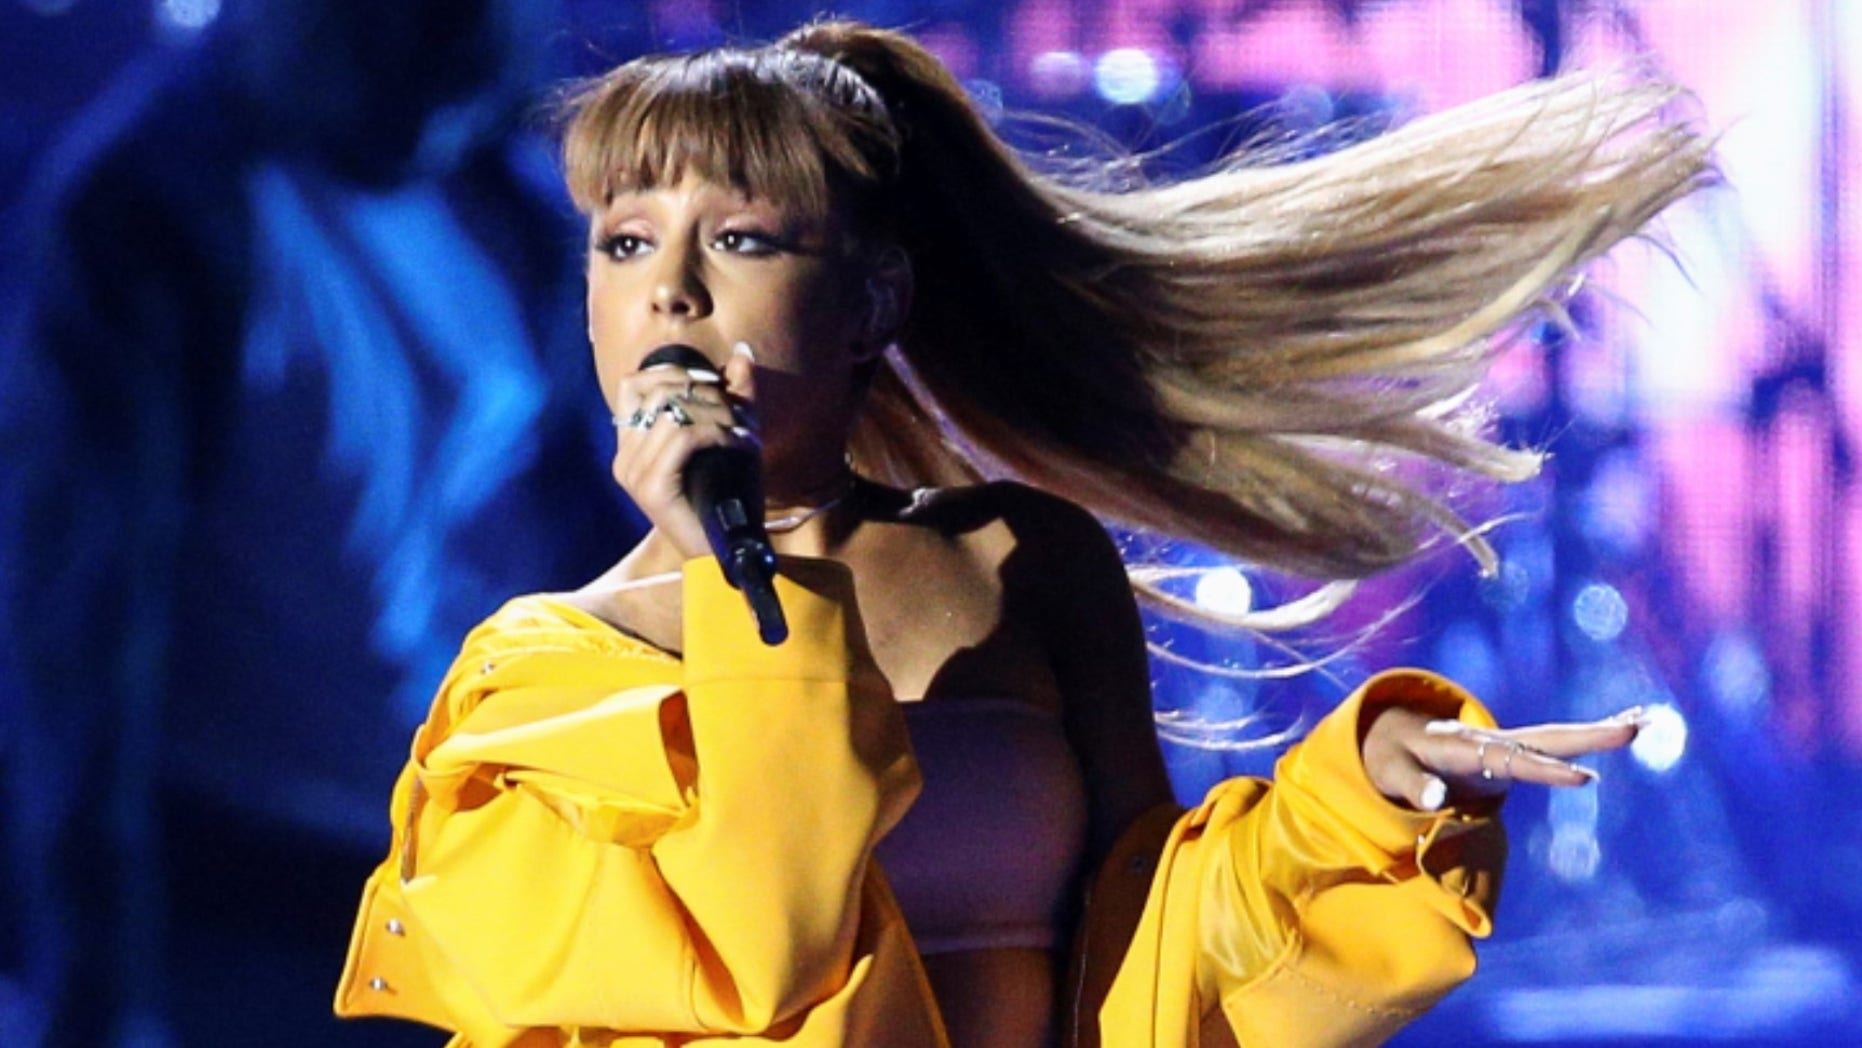 Ariana Grande's mother helped bring some fans backstage after a suicide bomber struck the Manchester arena her daughter was performing in on Monday.